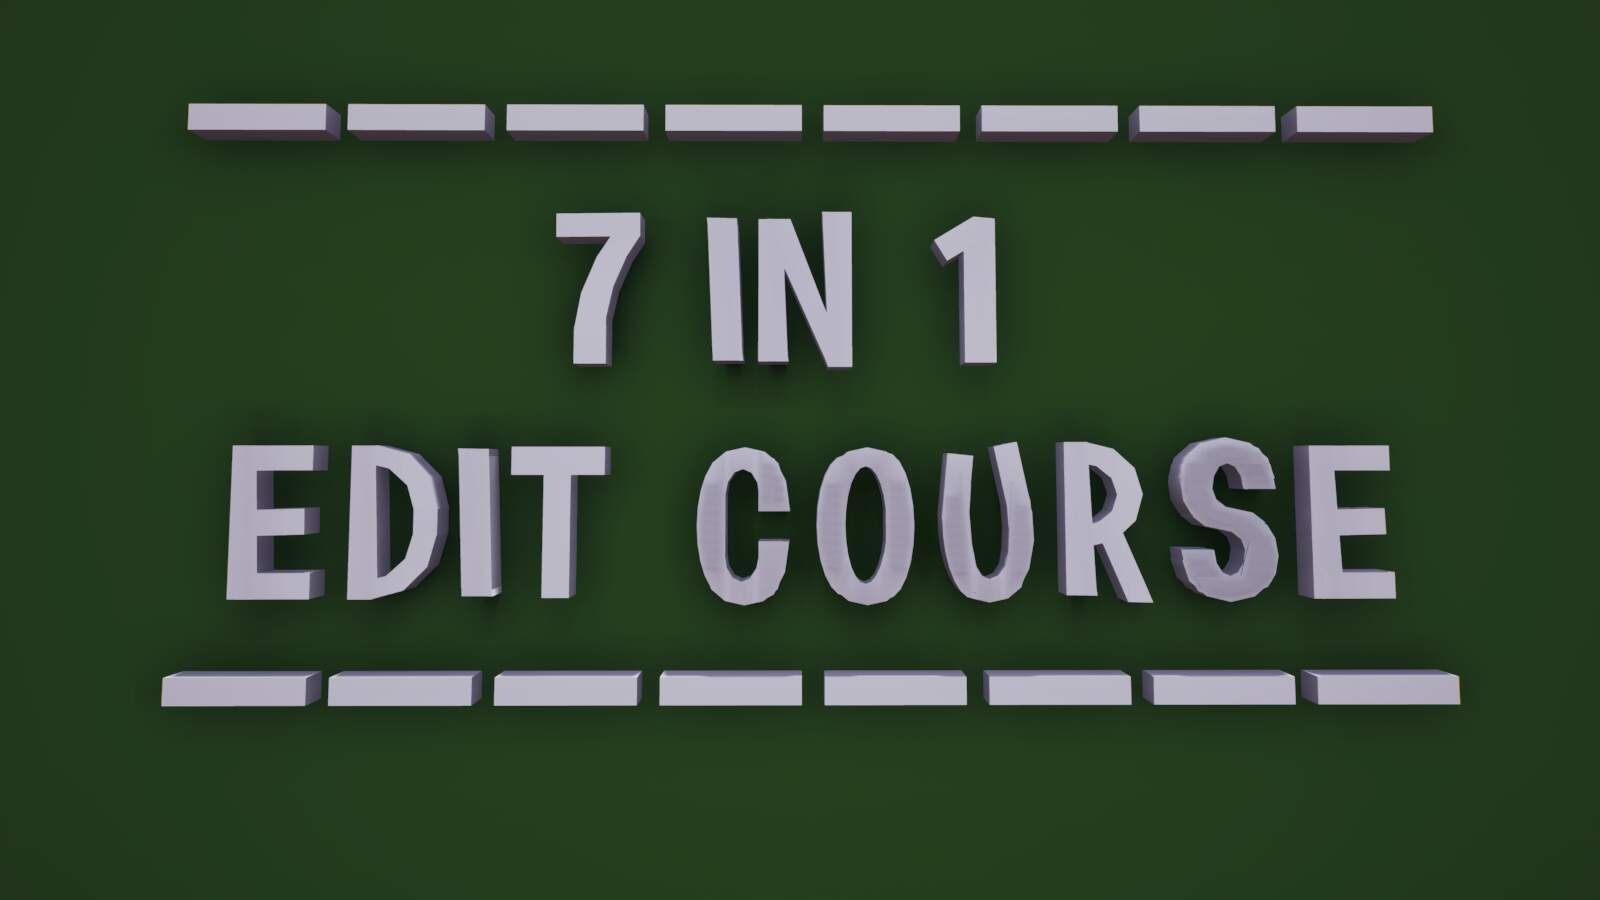 Candook Candooks 7 In 1 Edit Course Home christmas deathruns parkour edit courses escape zone wars horror hide & seek 1v1 box fights mini games prop hunt puzzles gun games music dropper fun murder mystery ffa. candook candooks 7 in 1 edit course